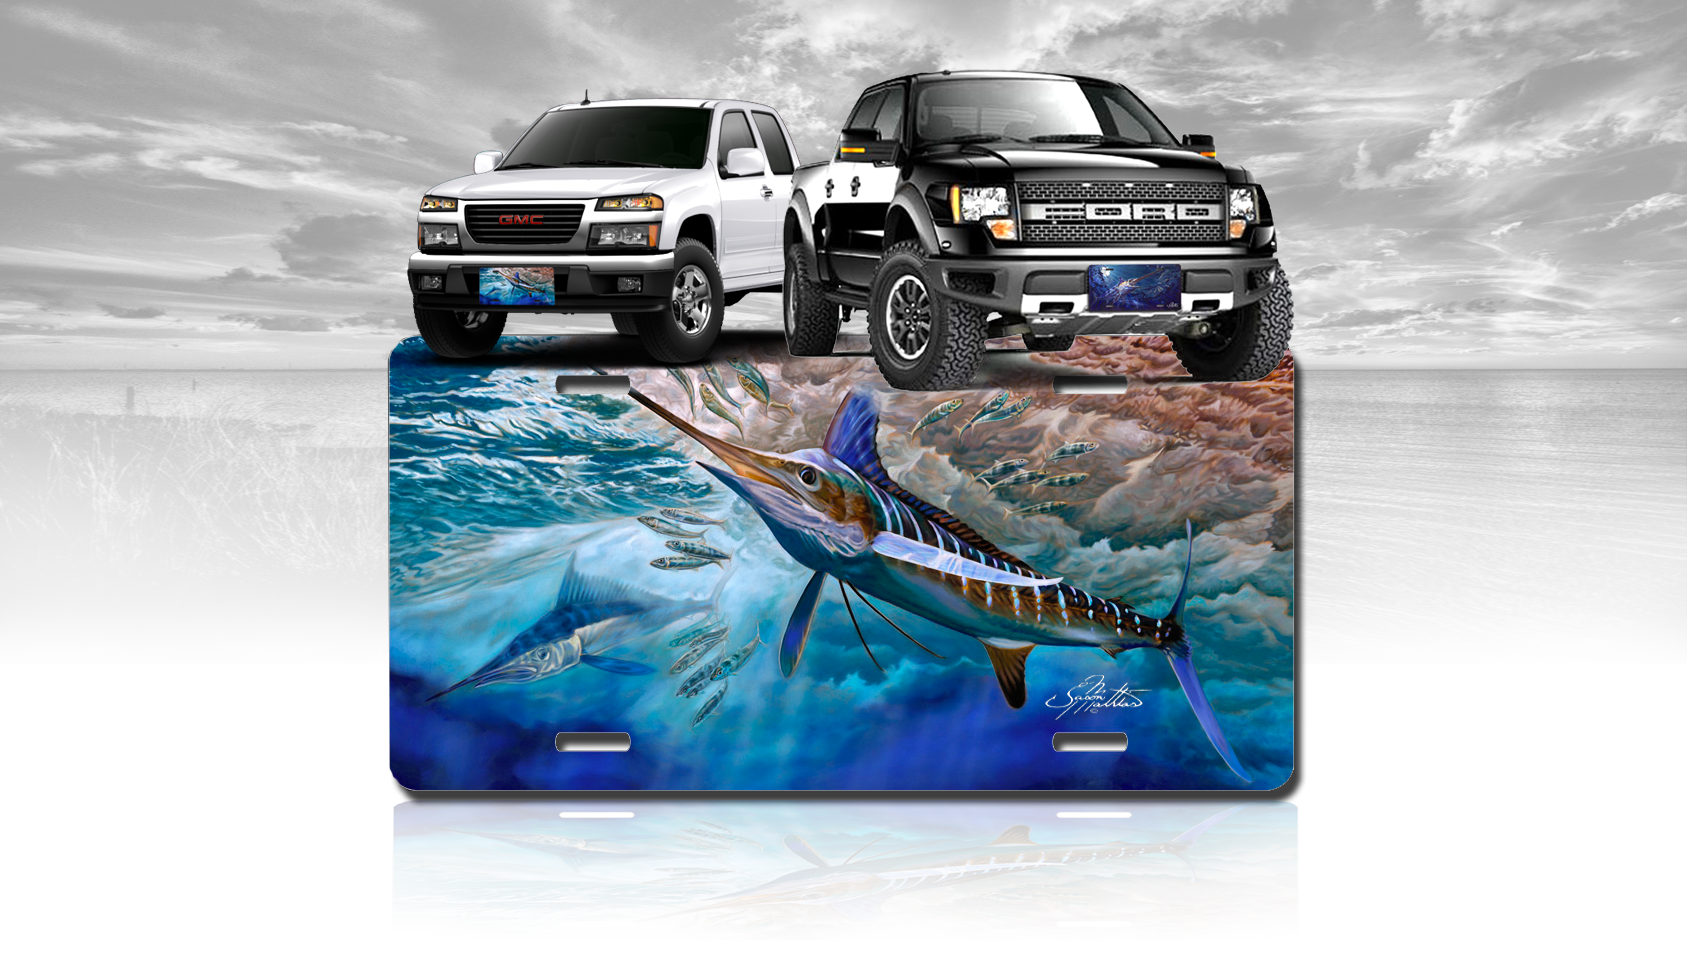 jason-mathias-fishing-art-license-plate-tags.png